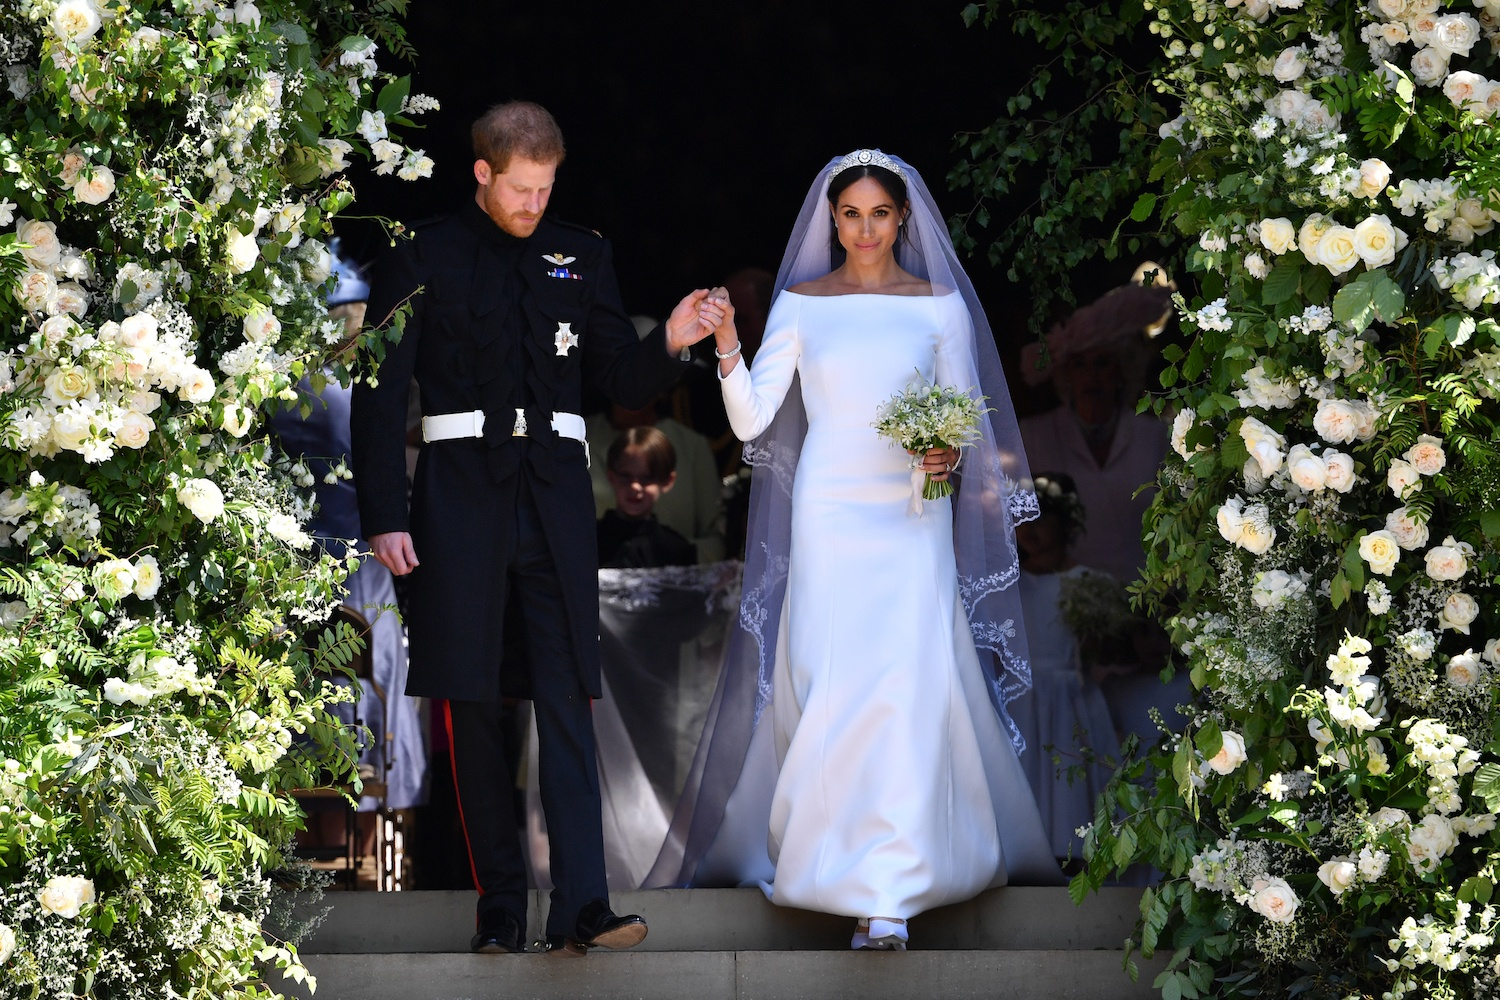 Prince Harry marries Meghan Markle.